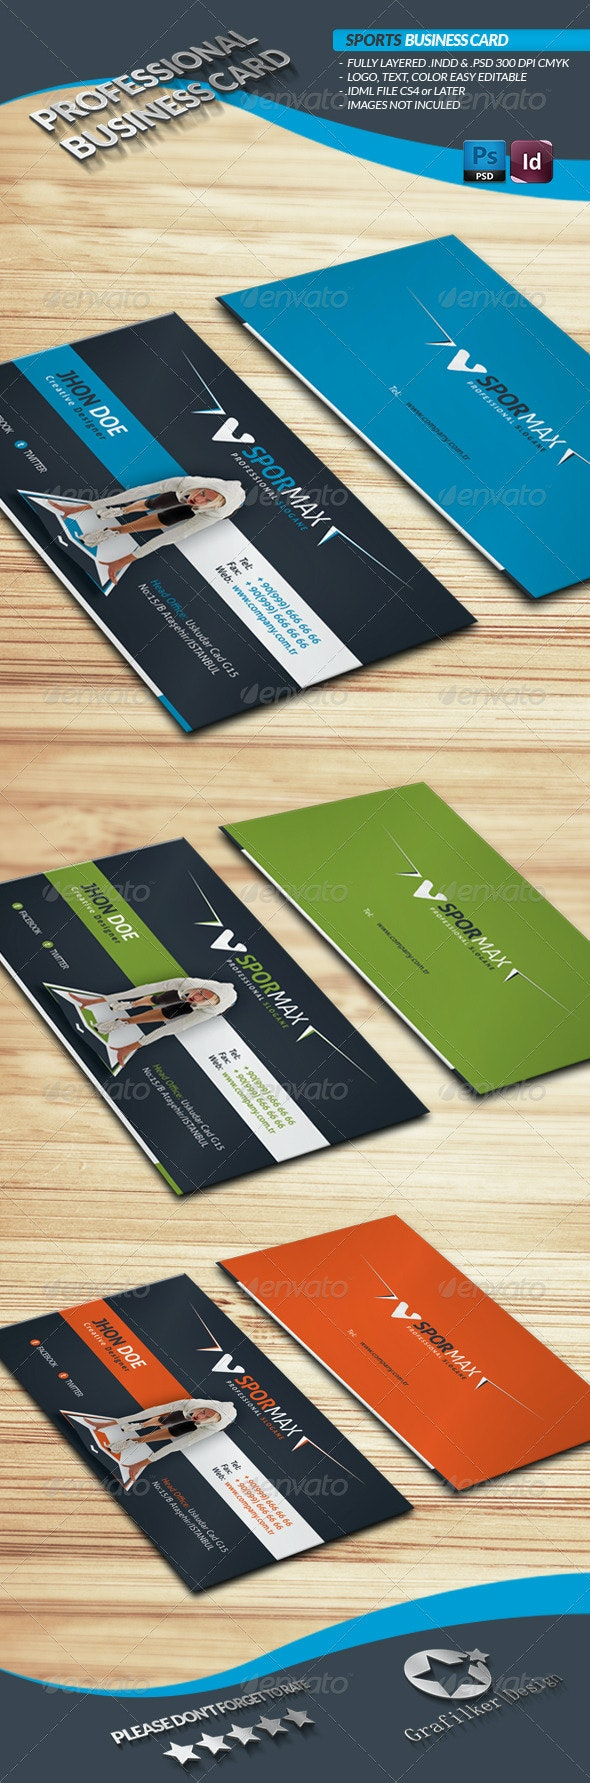 Sports Business Card - Corporate Business Cards